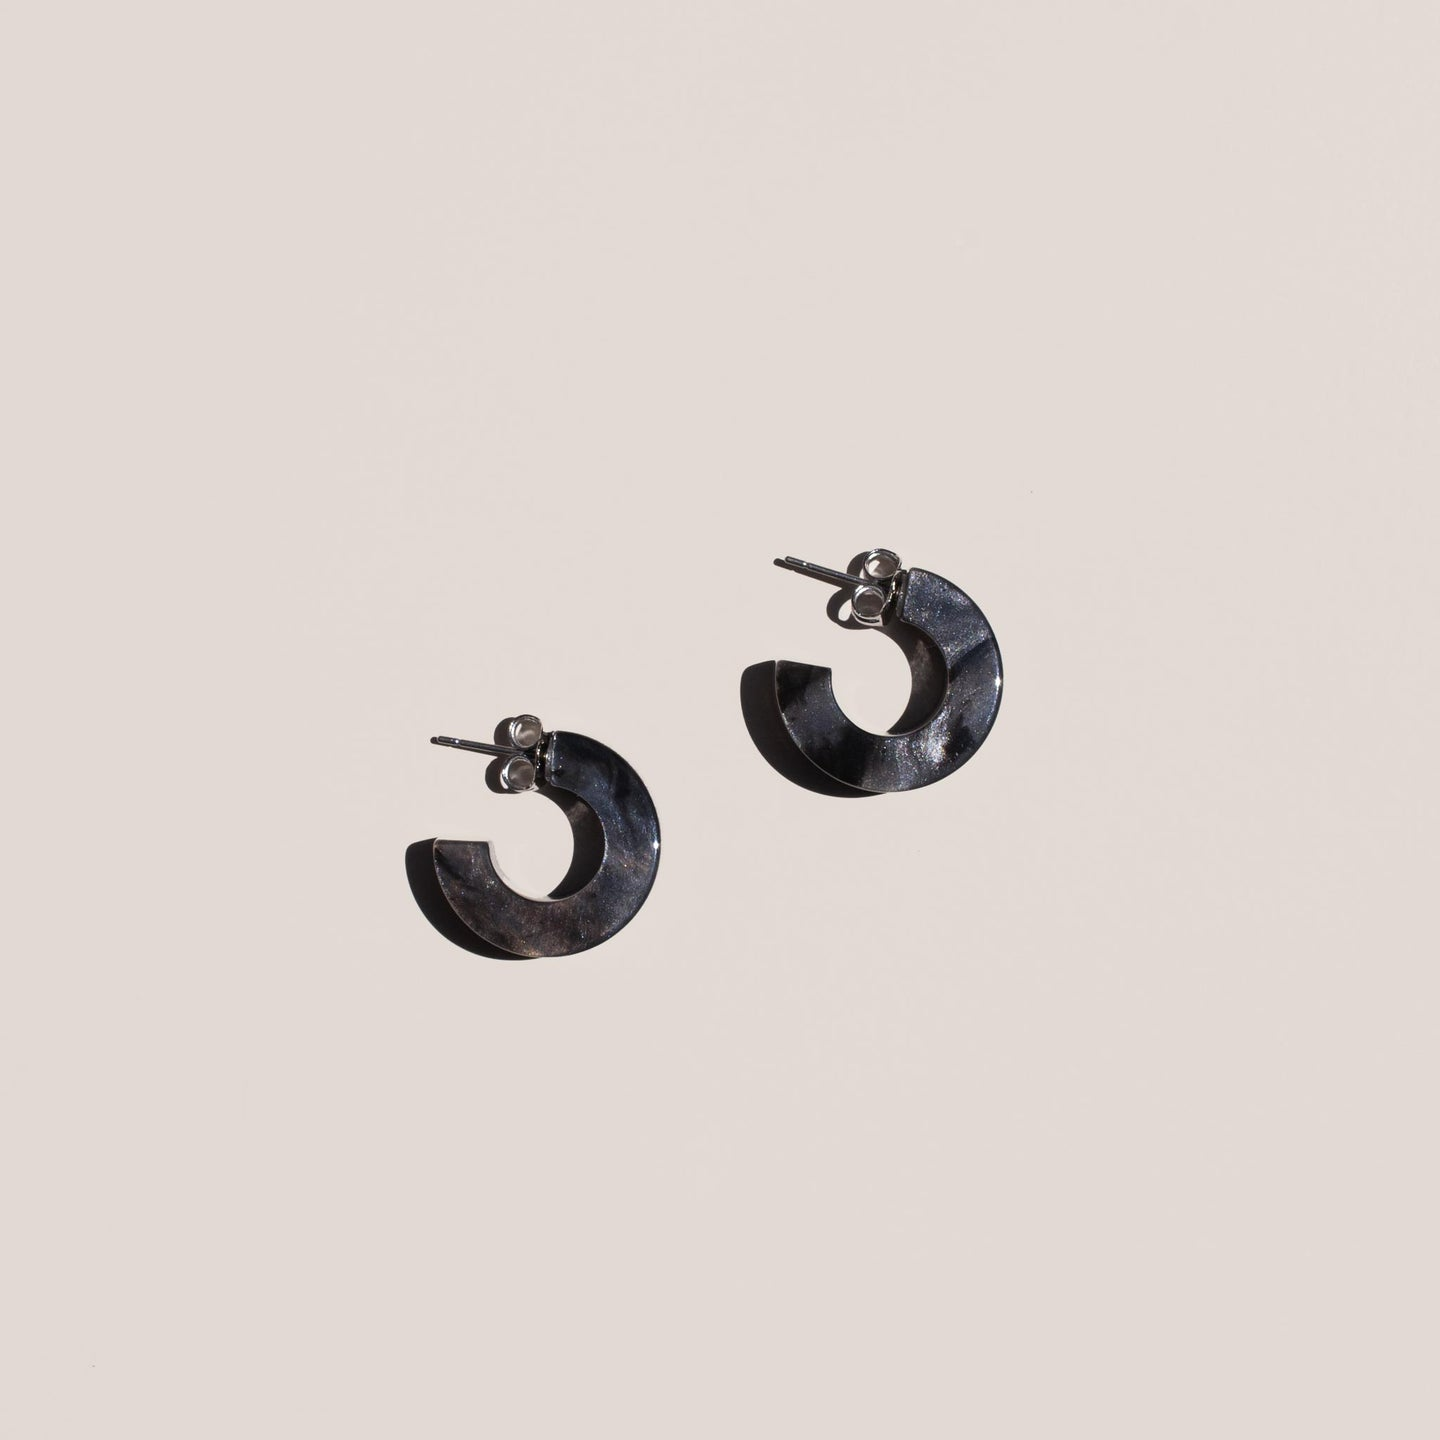 Rachel Comey - Cuba Earrings in Black Marble, available at LCD.